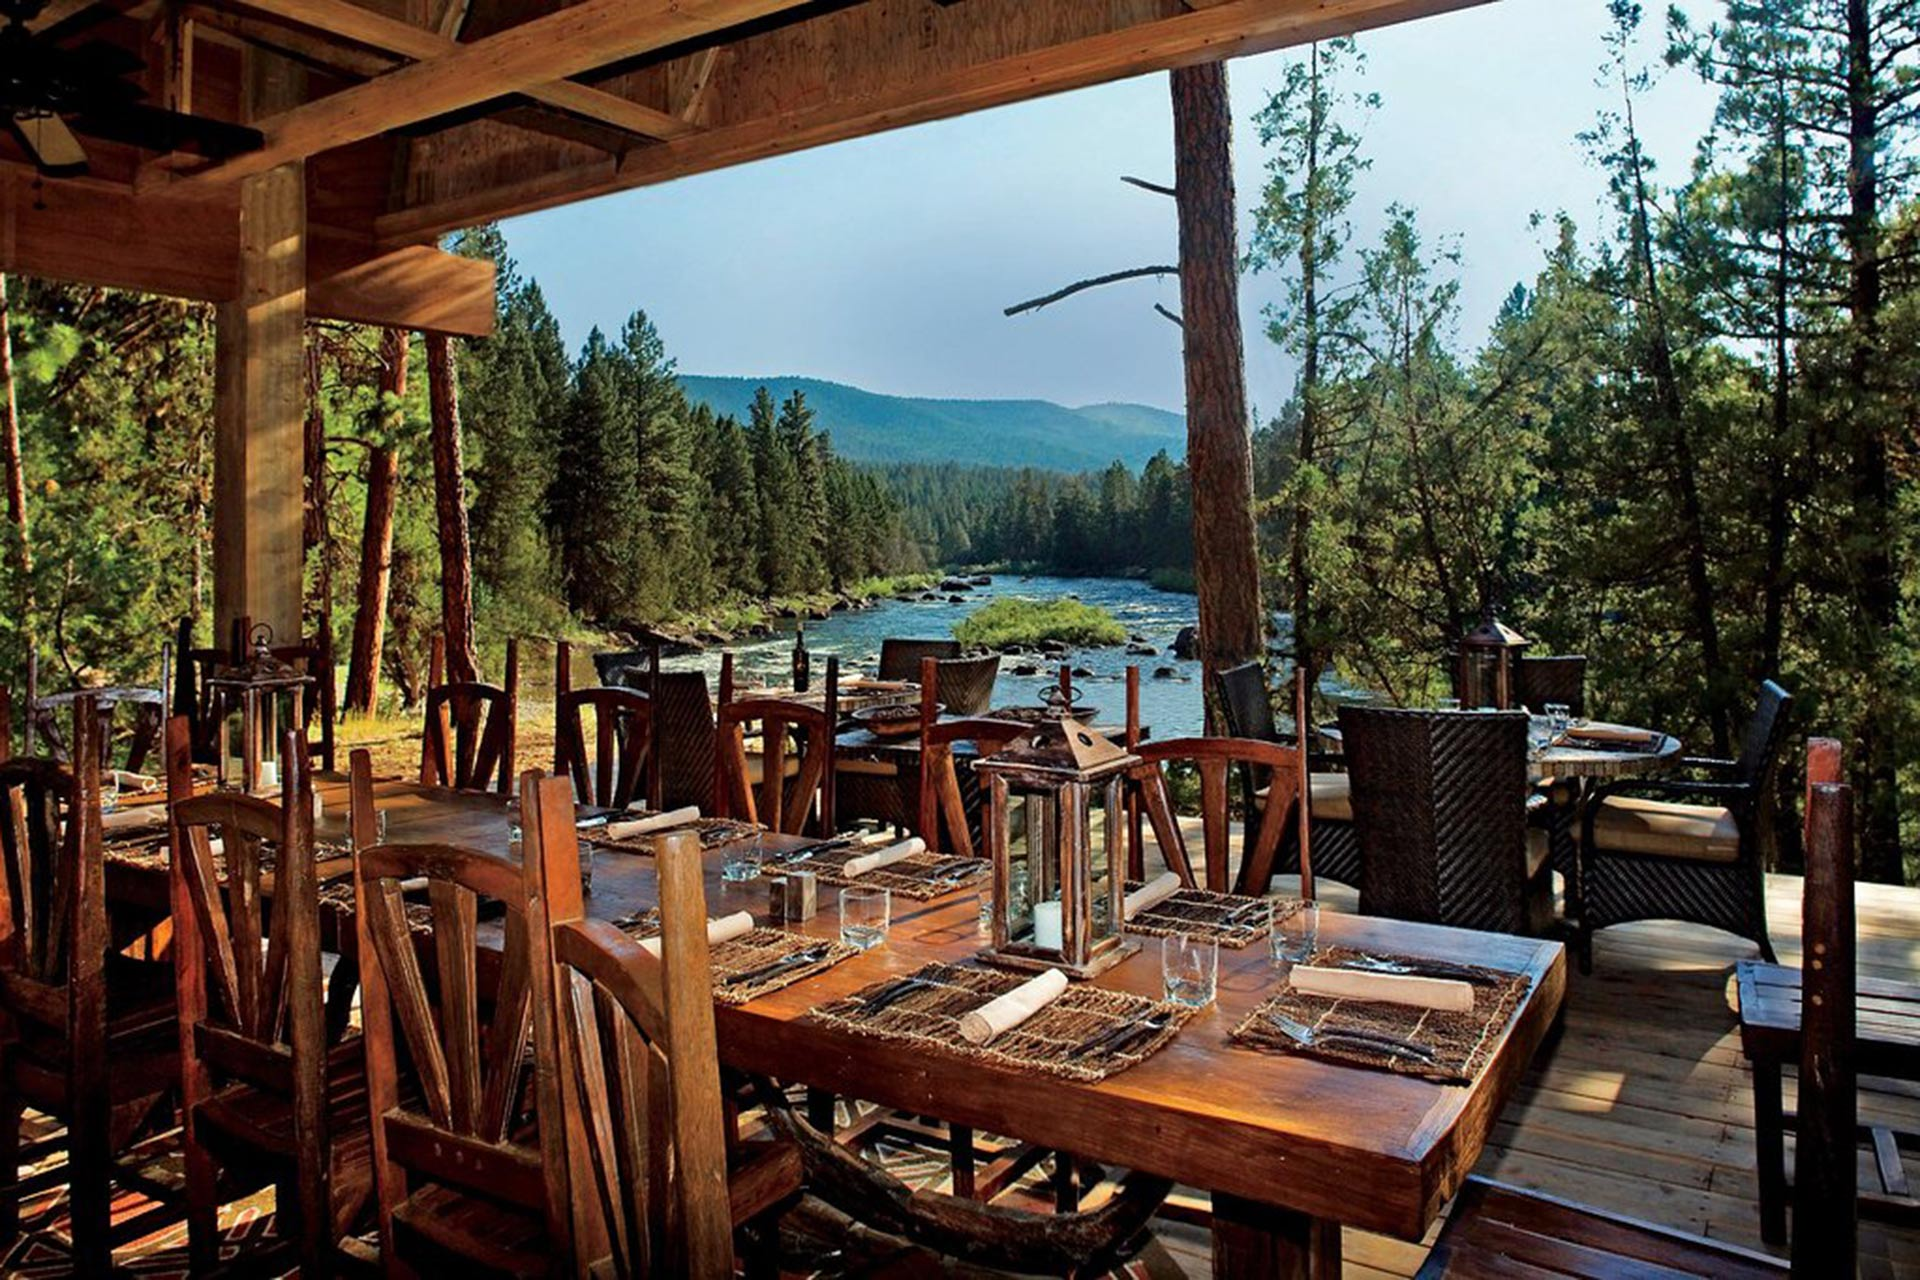 River Camp Dining Pavilion at The Resort at Paws Up in Montana.